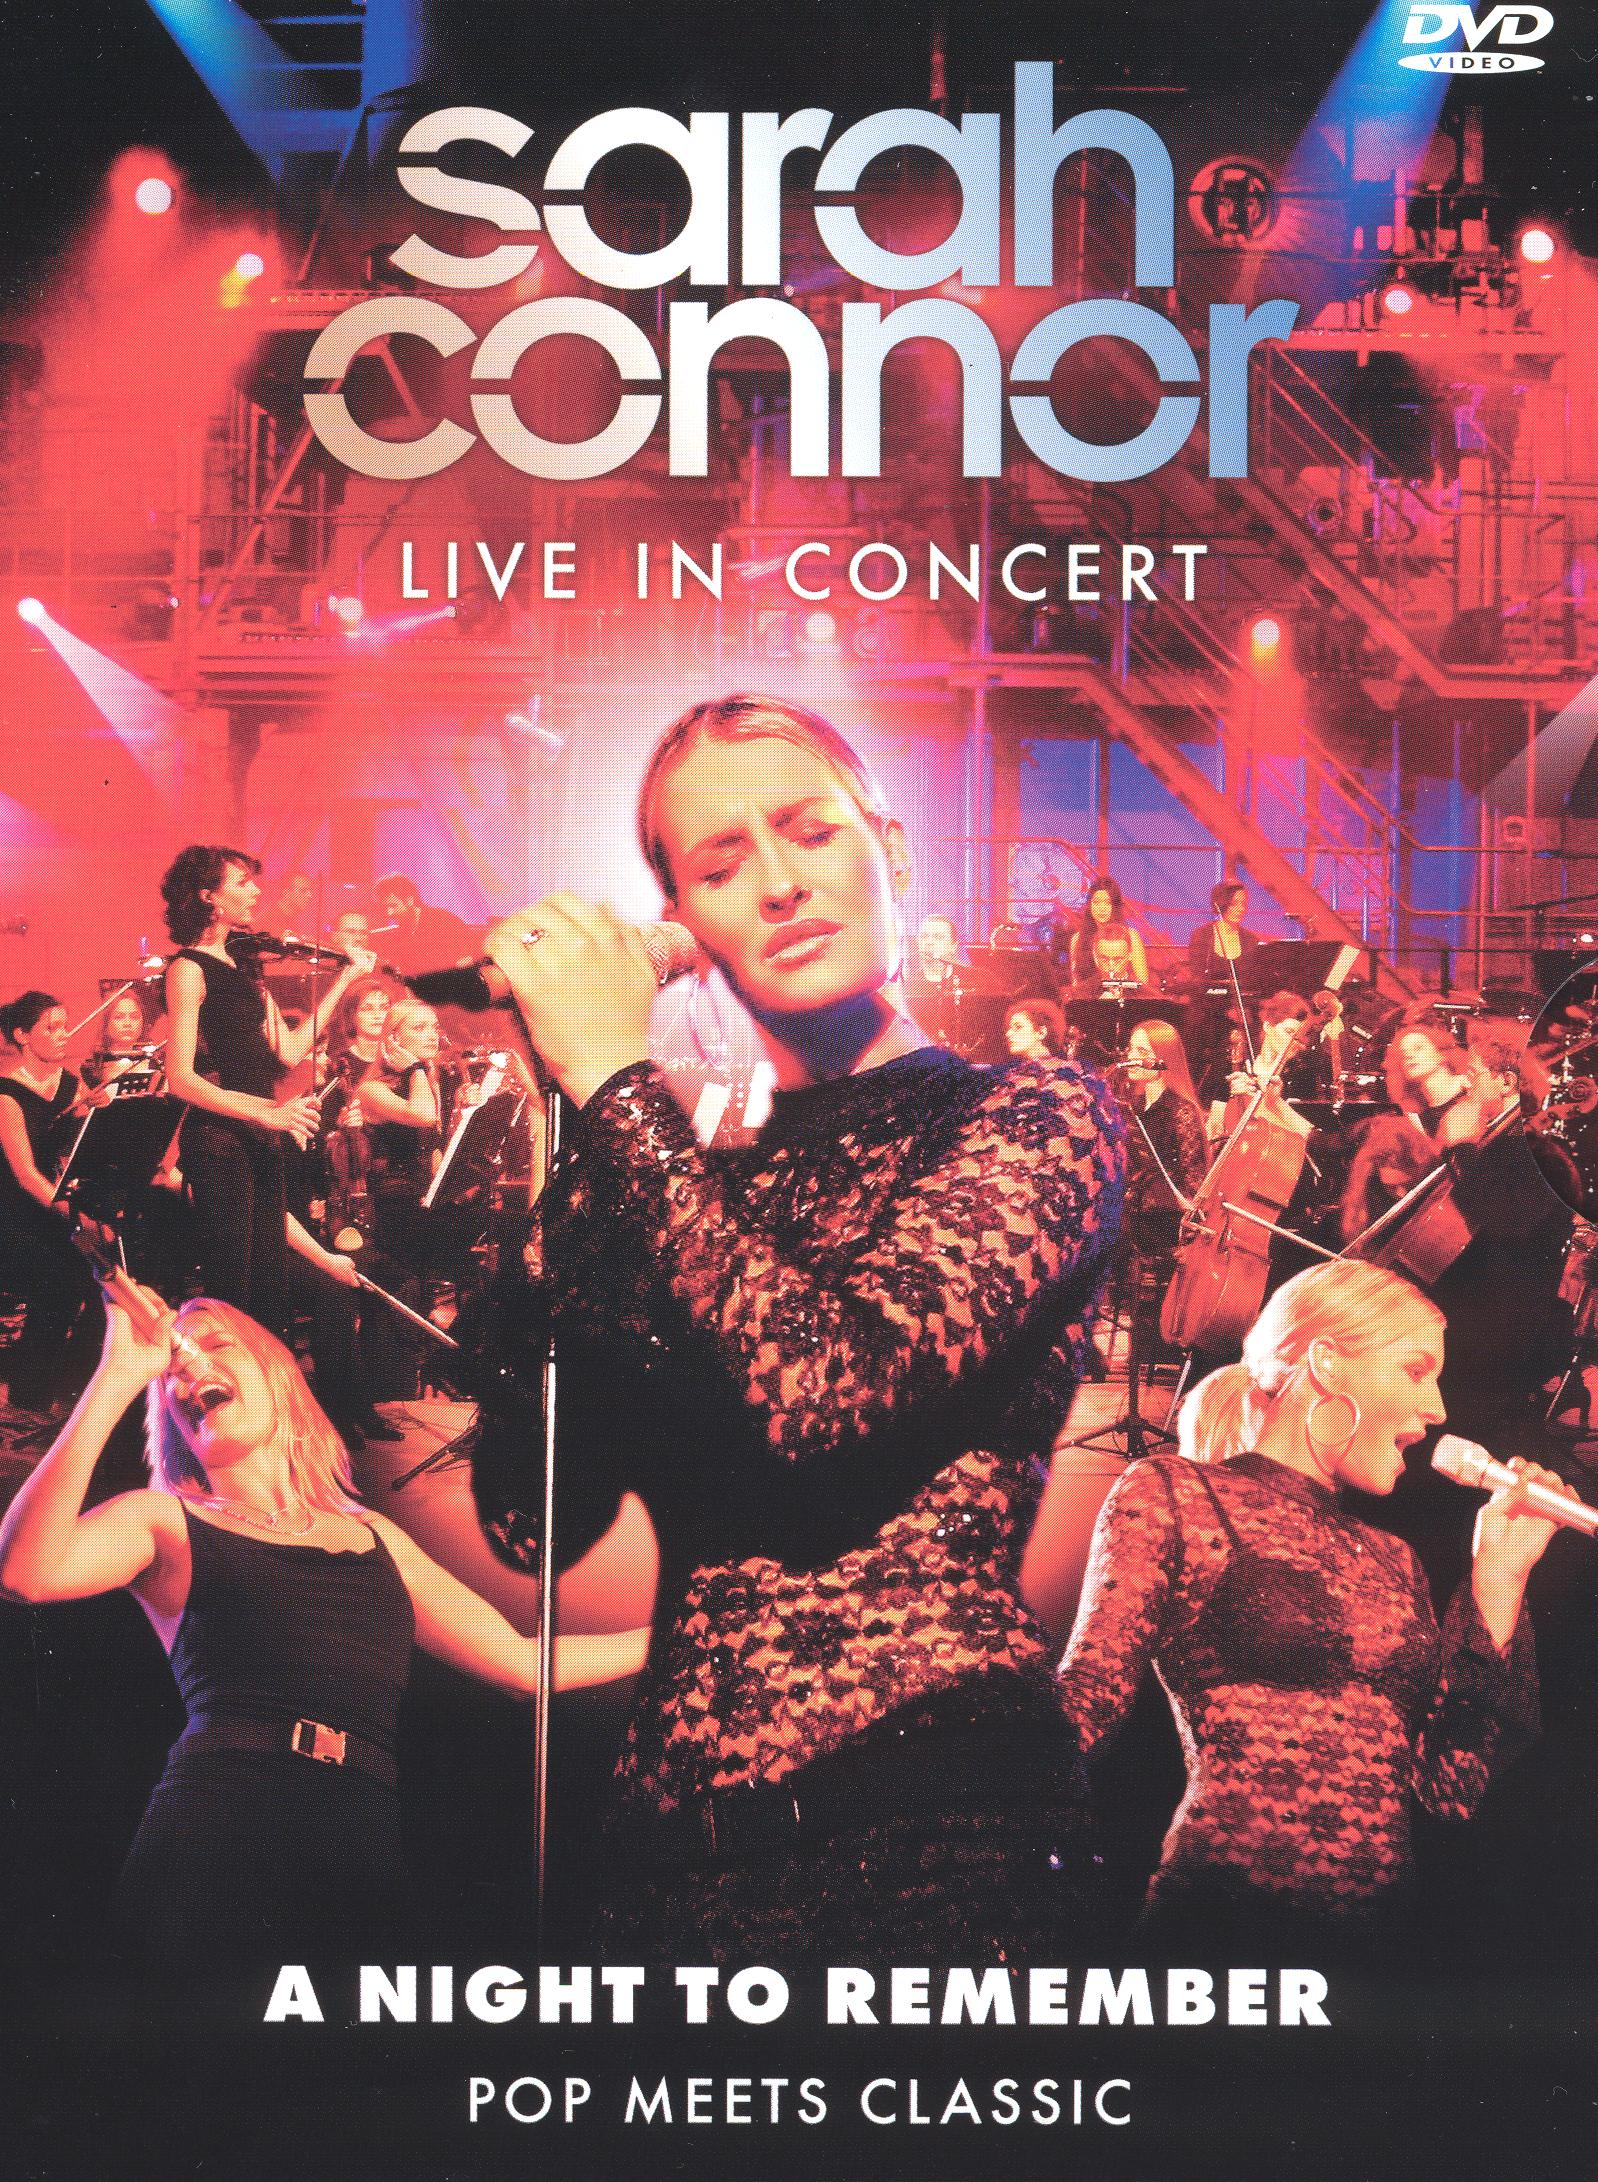 Sarah Connor: Live in Concert - A Night to Remember